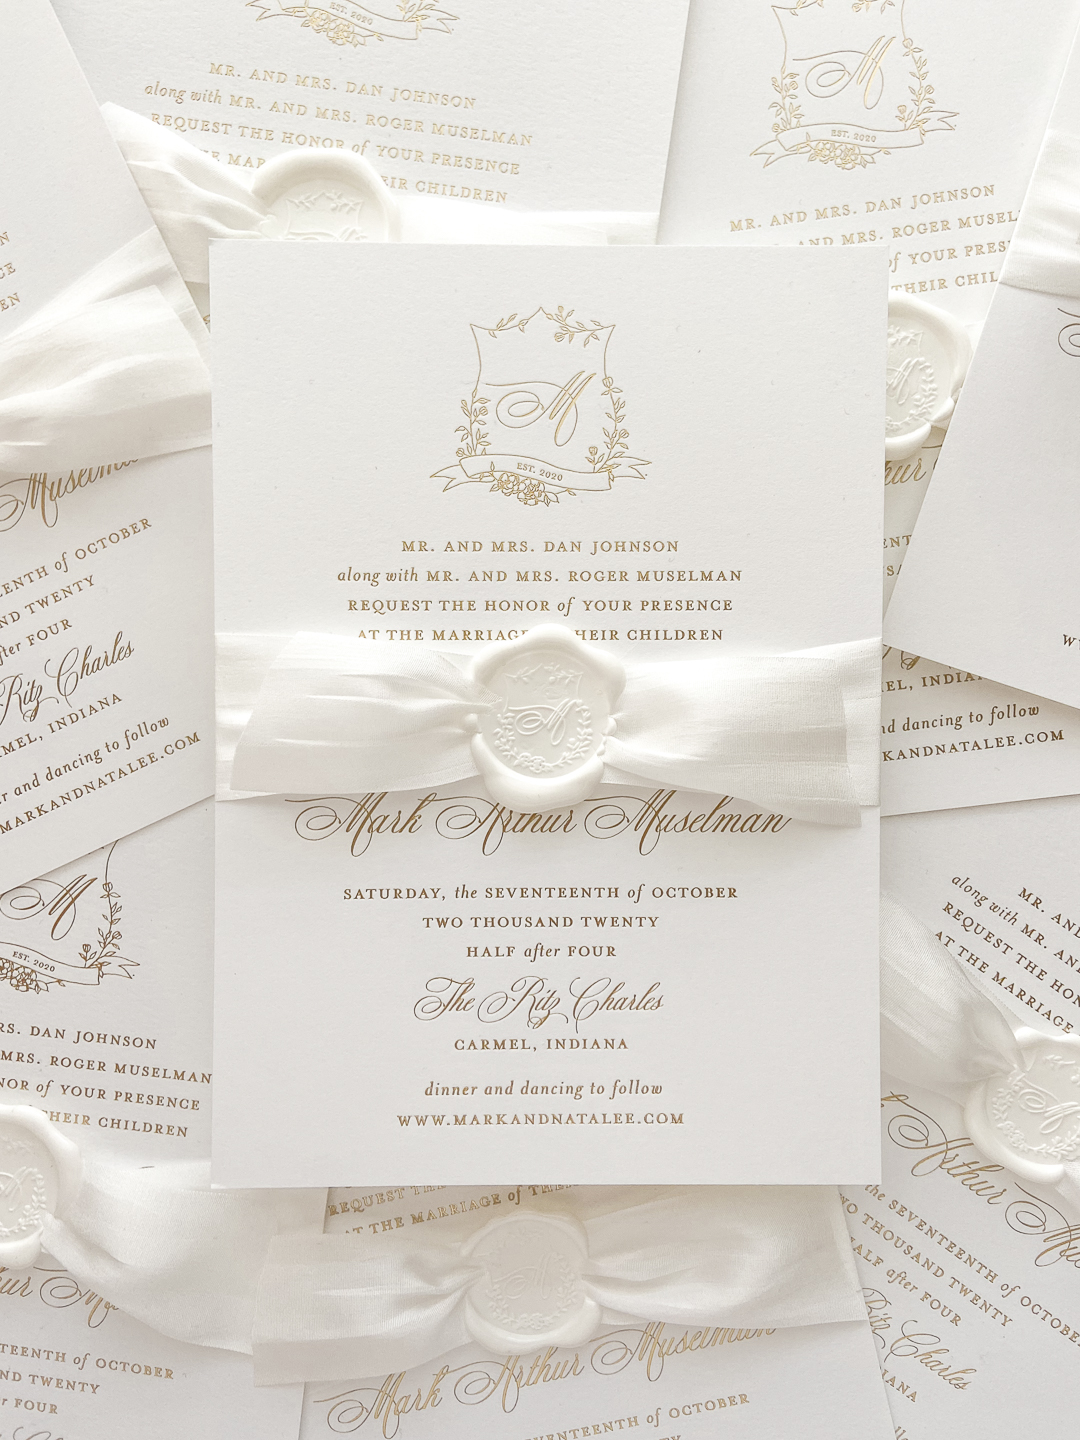 Gold foil wedding invitation with floral crest and monogram wrapped in white silk ribbon and white wax seal.